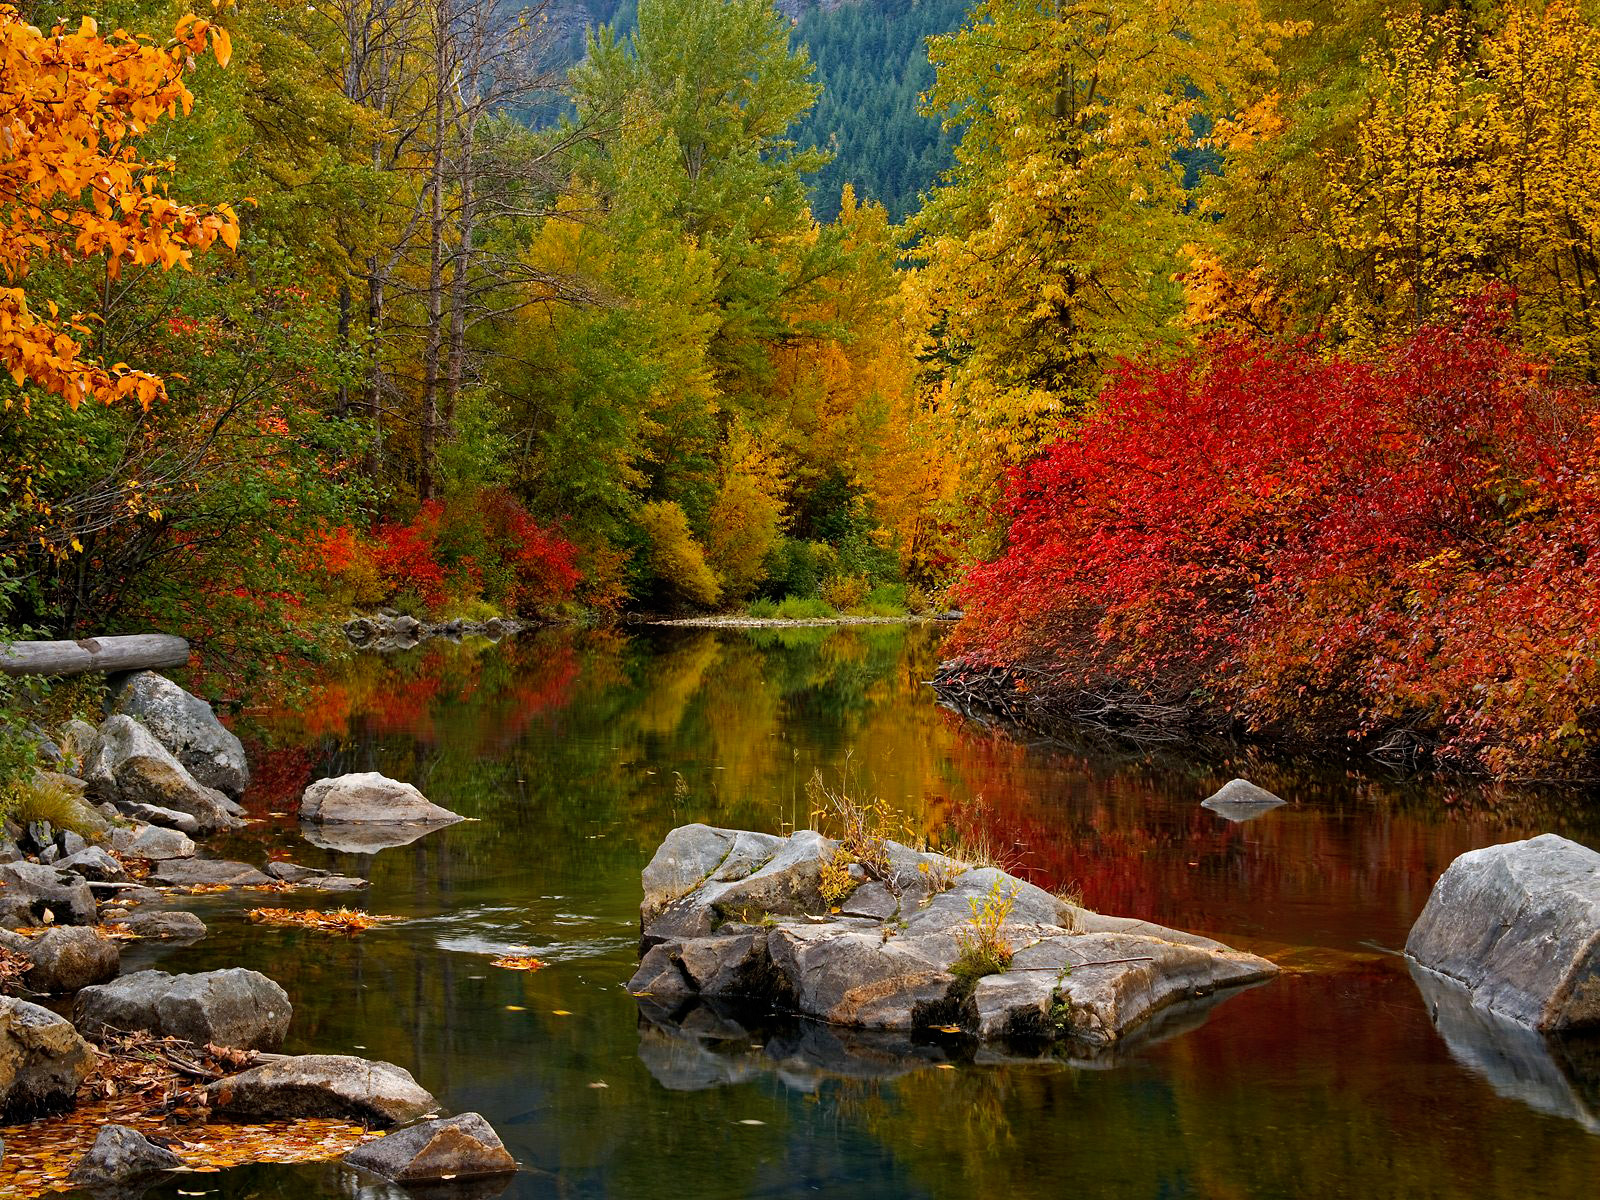 bio bing autumn wallpapers this bing wallpaper images autumn and 1600x1200